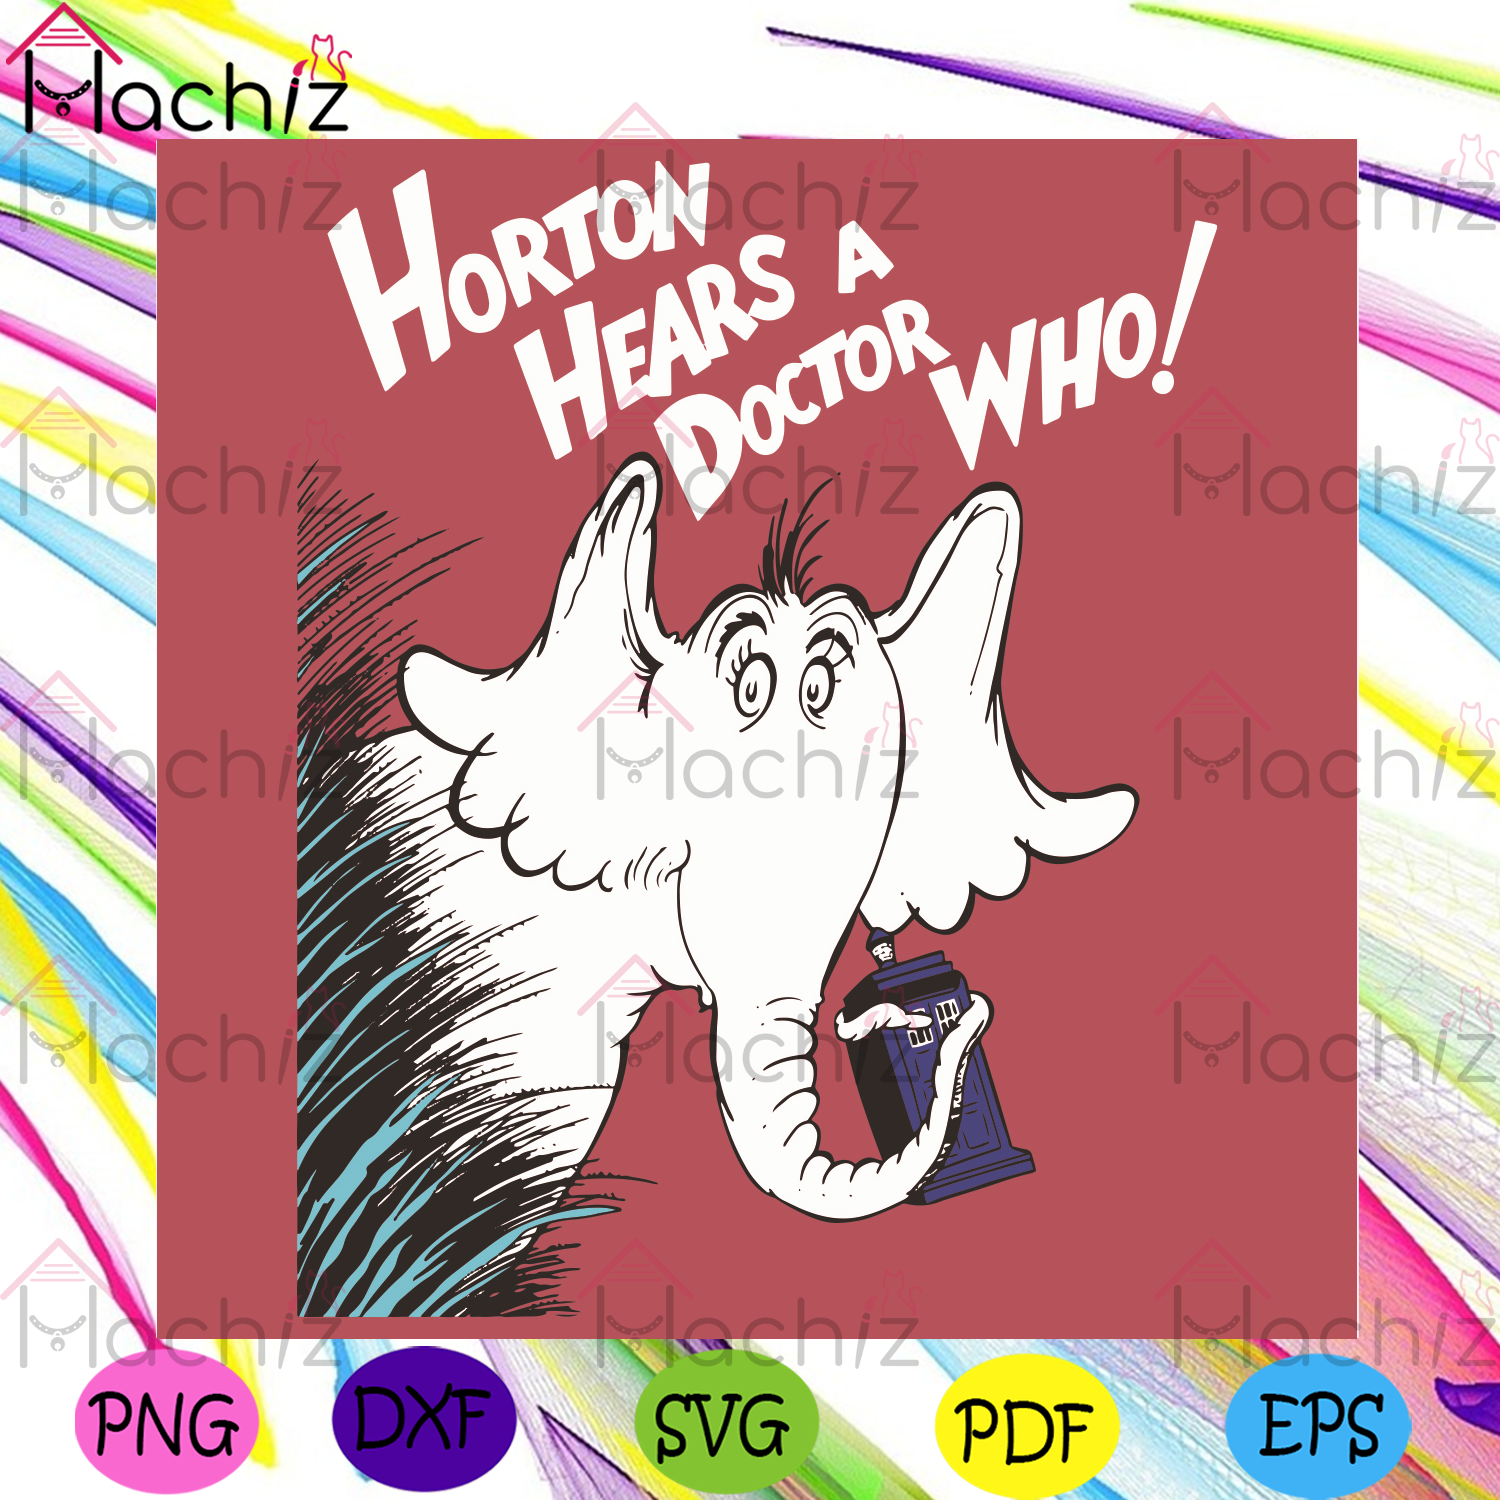 Horton Hears A Doctor Who Svg, Dr Seuss Svg, Dr Seuss Lovers Svg, Dr Seuss Gifts Svg, Horton Svg, A Doctor Svg, Elephant Svg, Dr Seuss Elephant Svg, Cute Elephant Svg, Dr Seuss Gifts Svg, Vintage Dr Seuss Svg